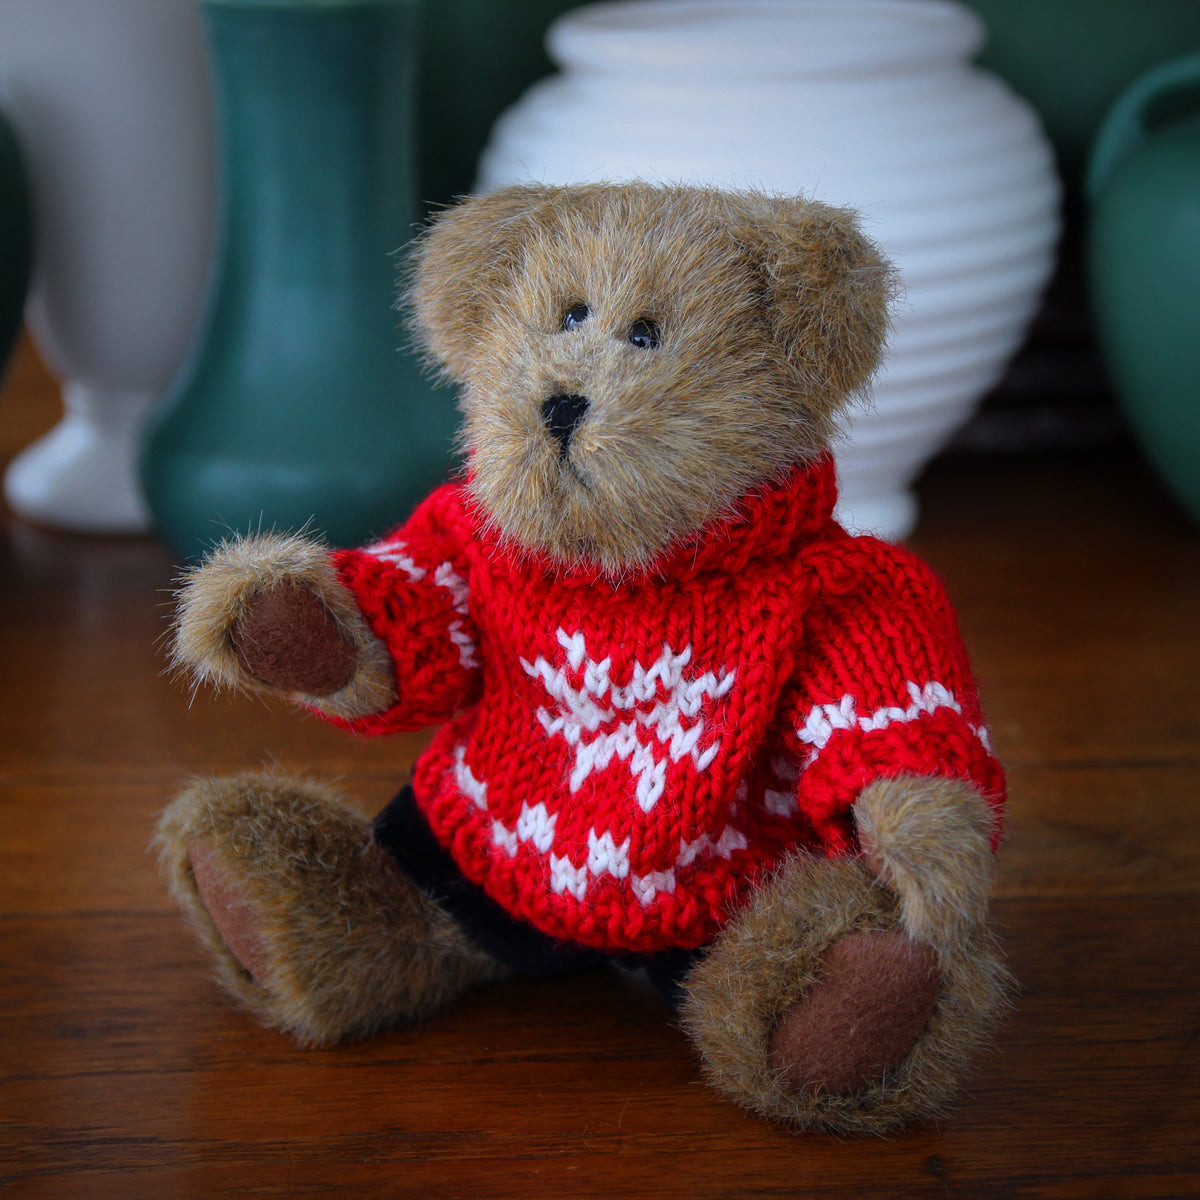 Ski Lodge Teddy Bear